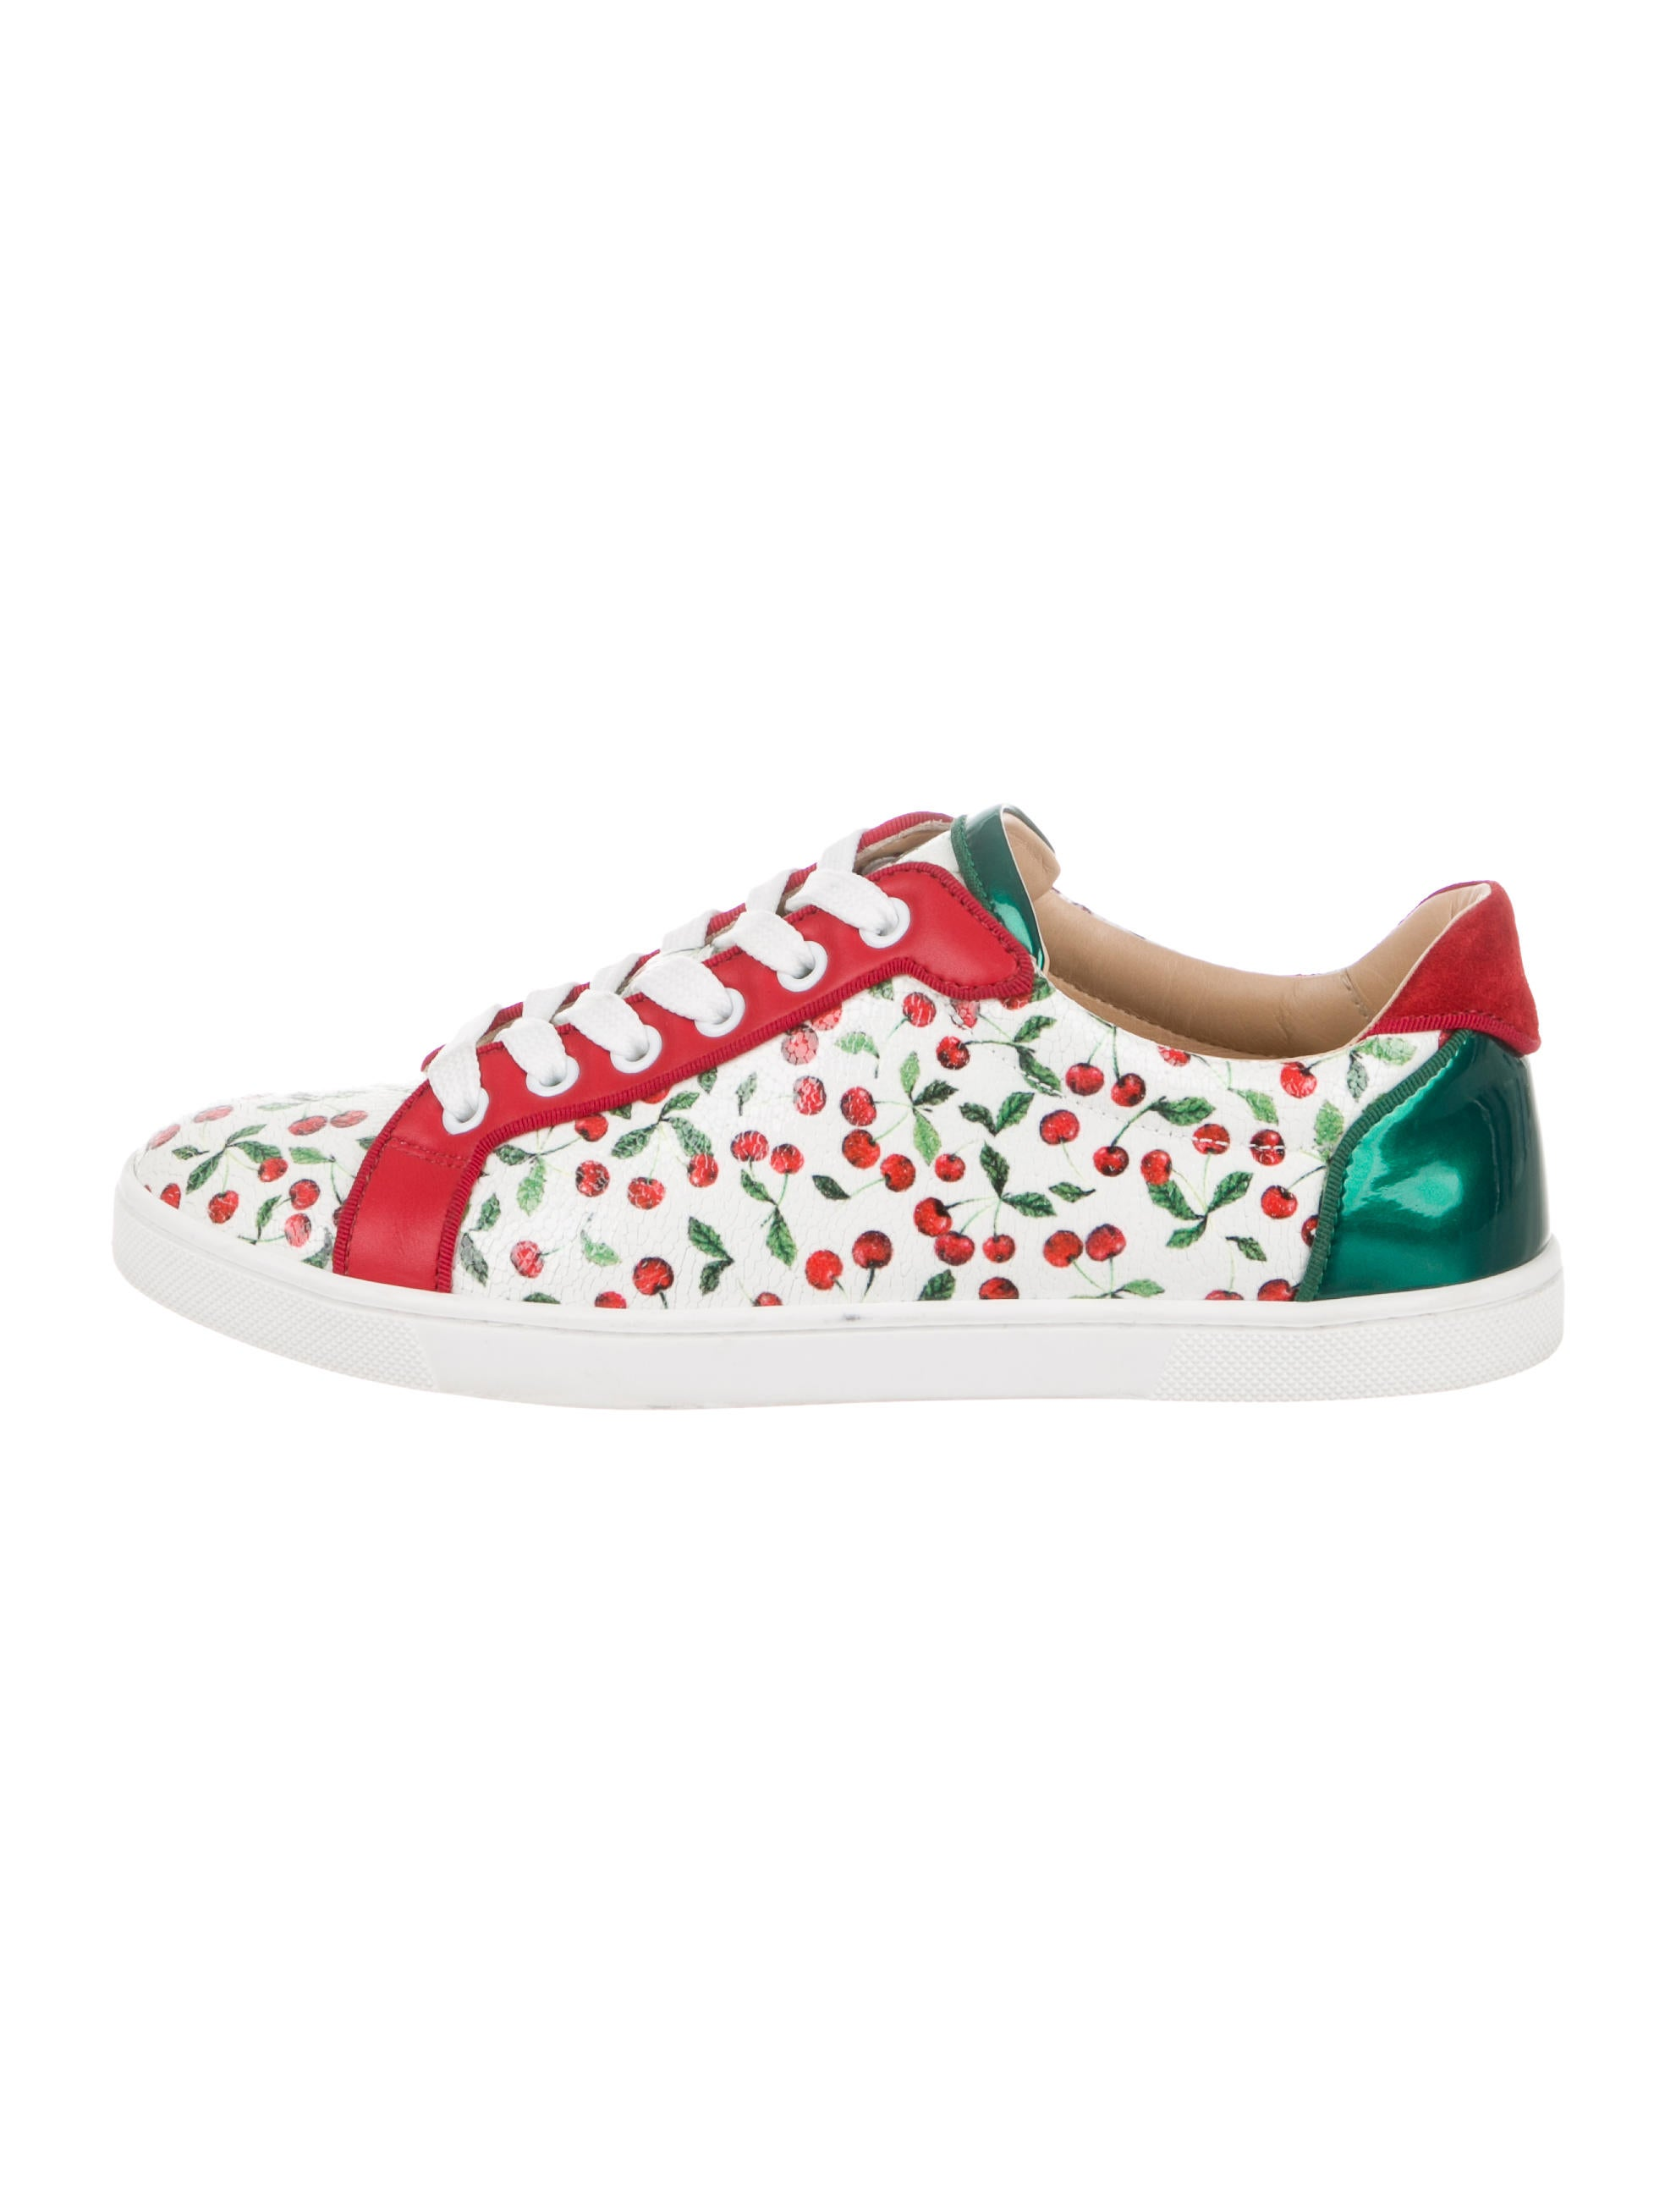 ae540c6a712 Christian Louboutin Seava Low-Top Sneakers - Shoes - CHT119018